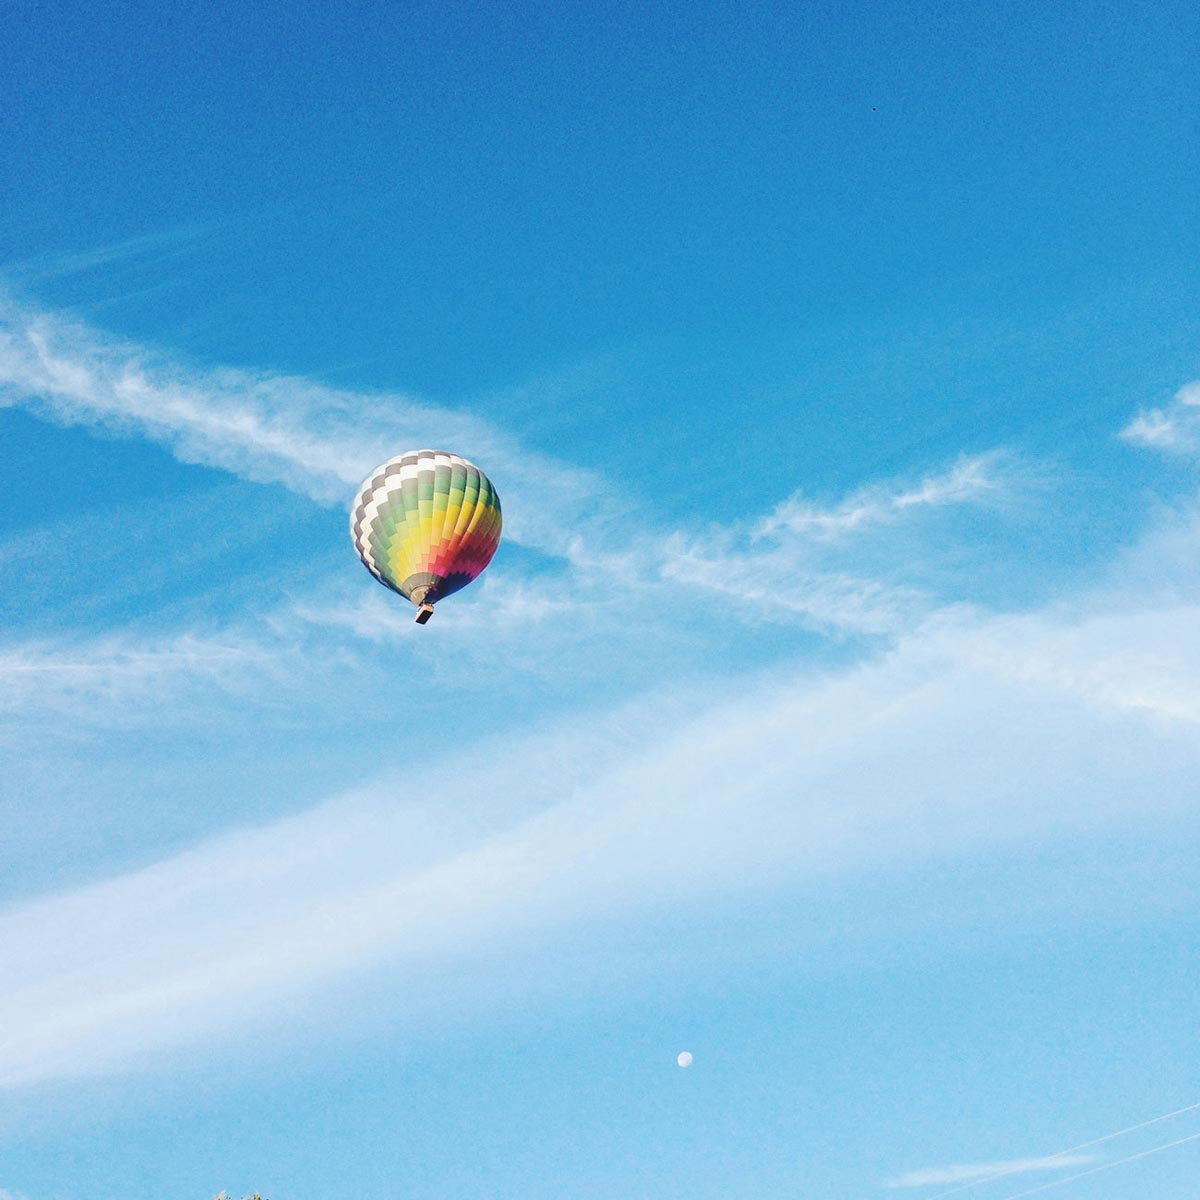 Photo by Max Wanger of hot air baloon flying into vivid blue sky